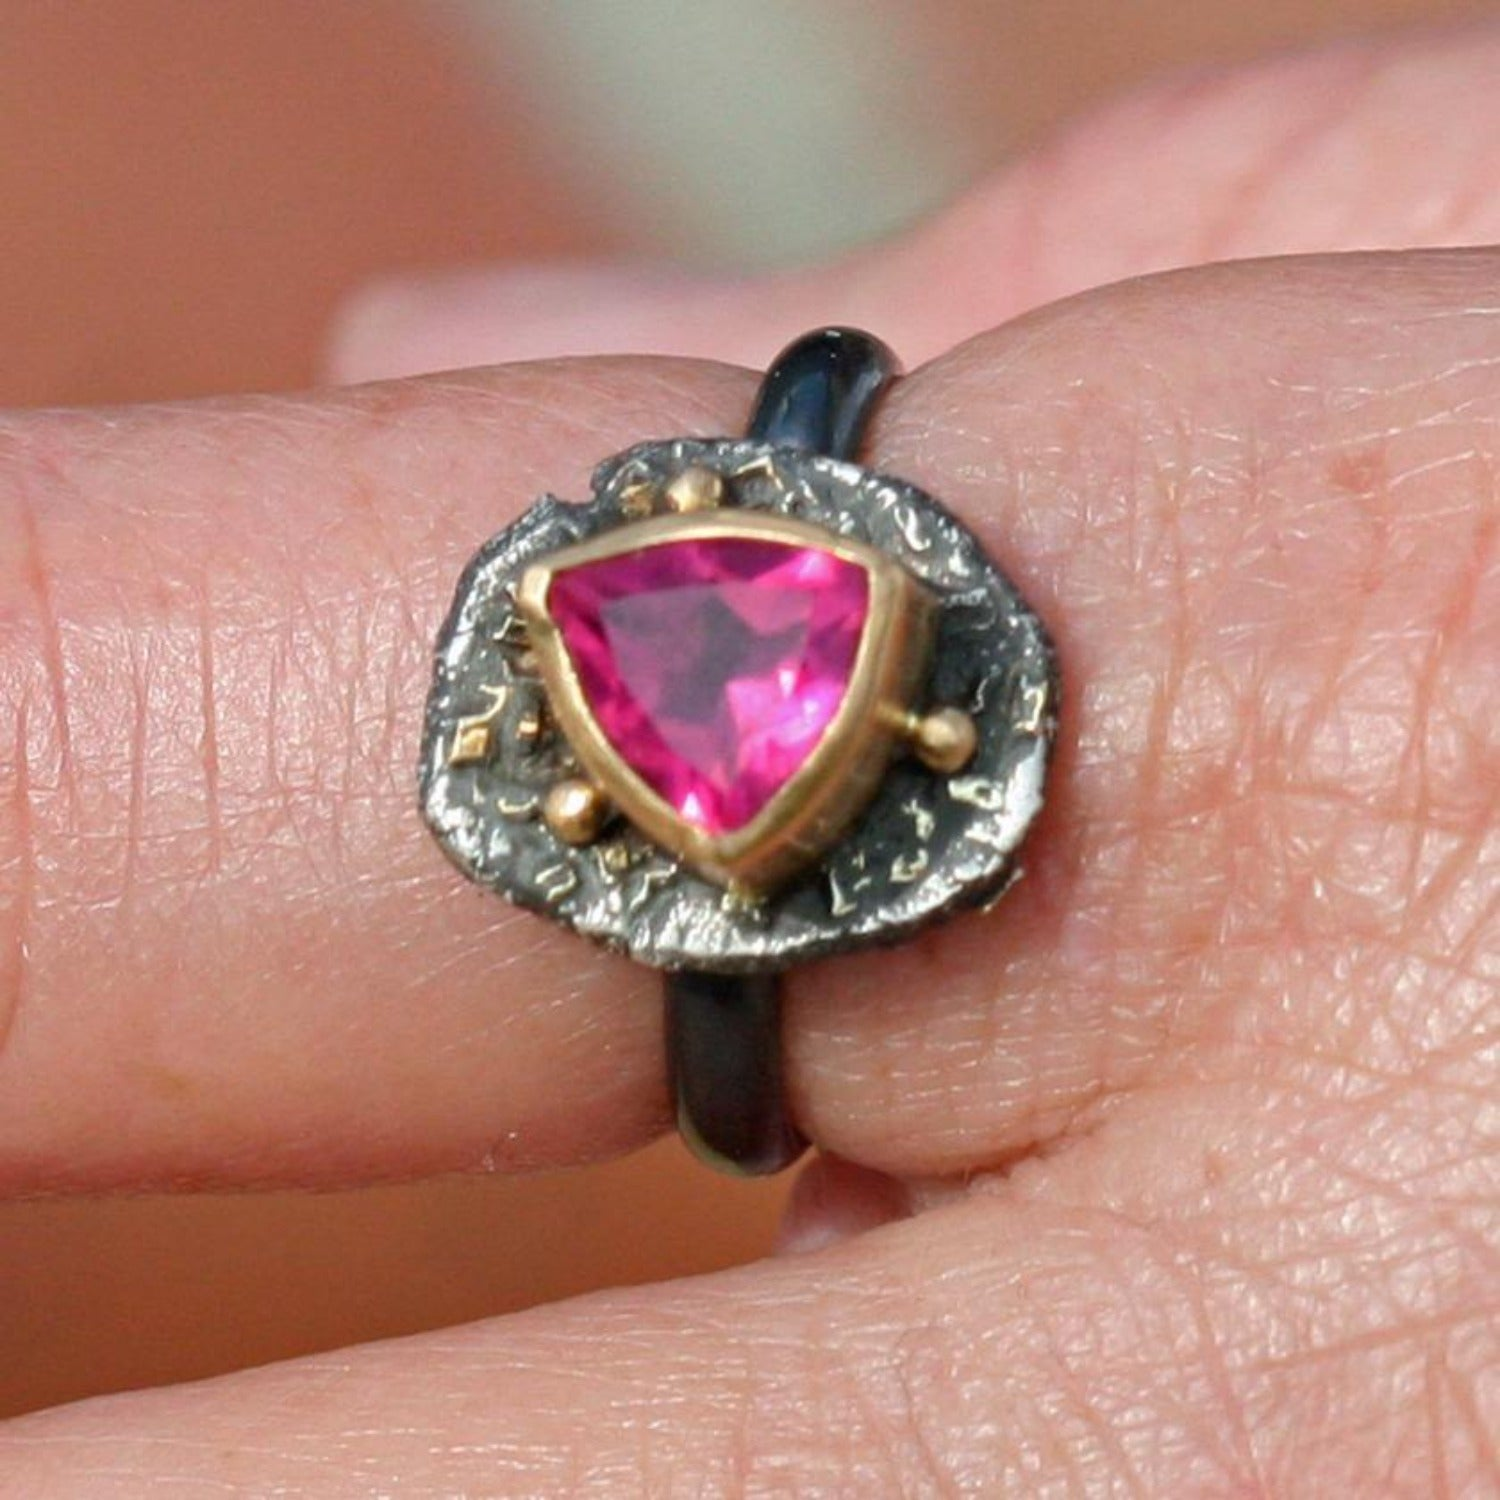 Pink Tourmaline Organic Ring - Size 8- 18k Gold And Sterling Silver